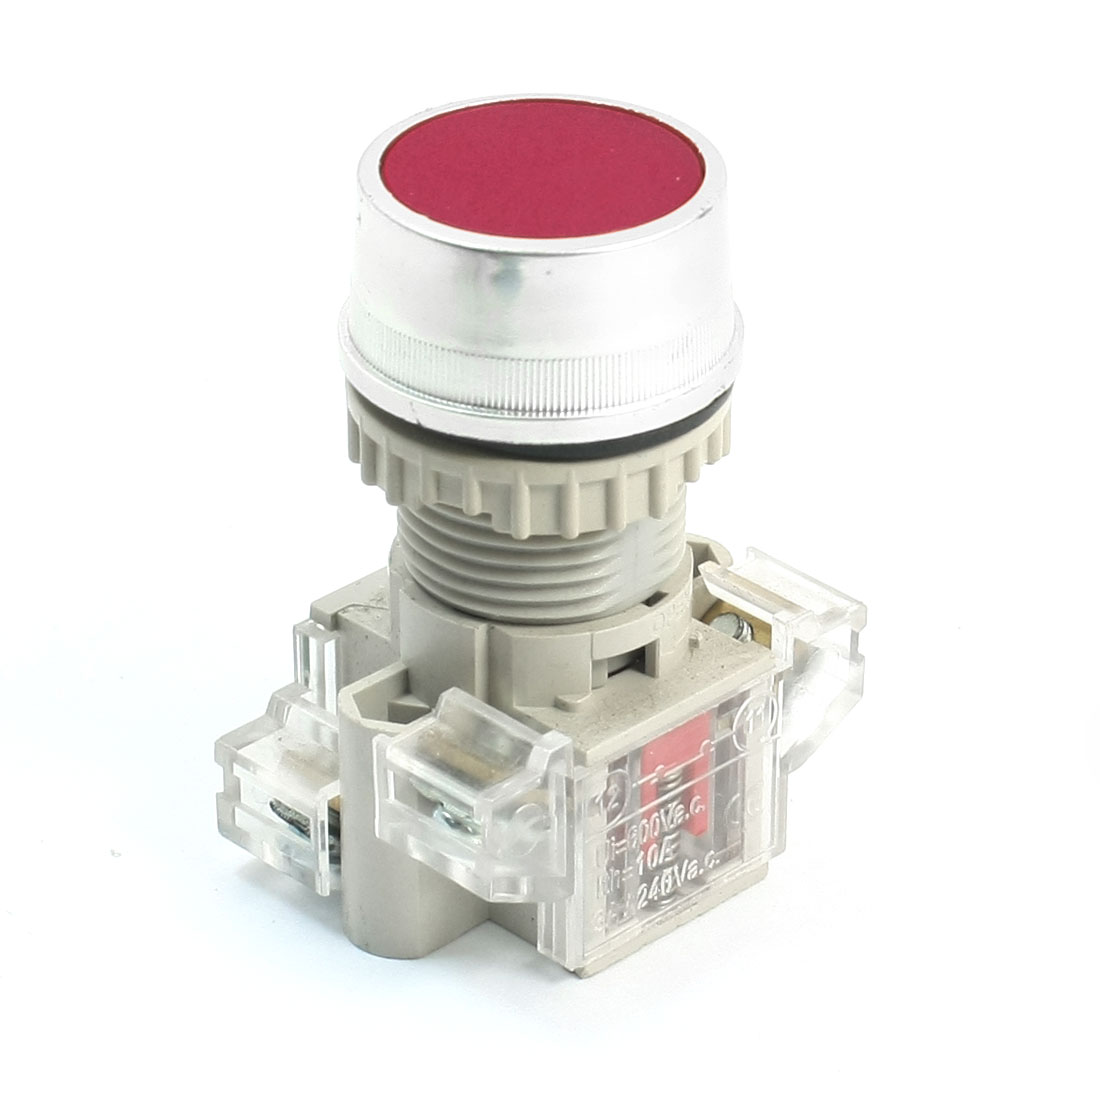 AC 240V 3A DPST 1NO 1NC Momentary Circuit Control Push Button Switch Red